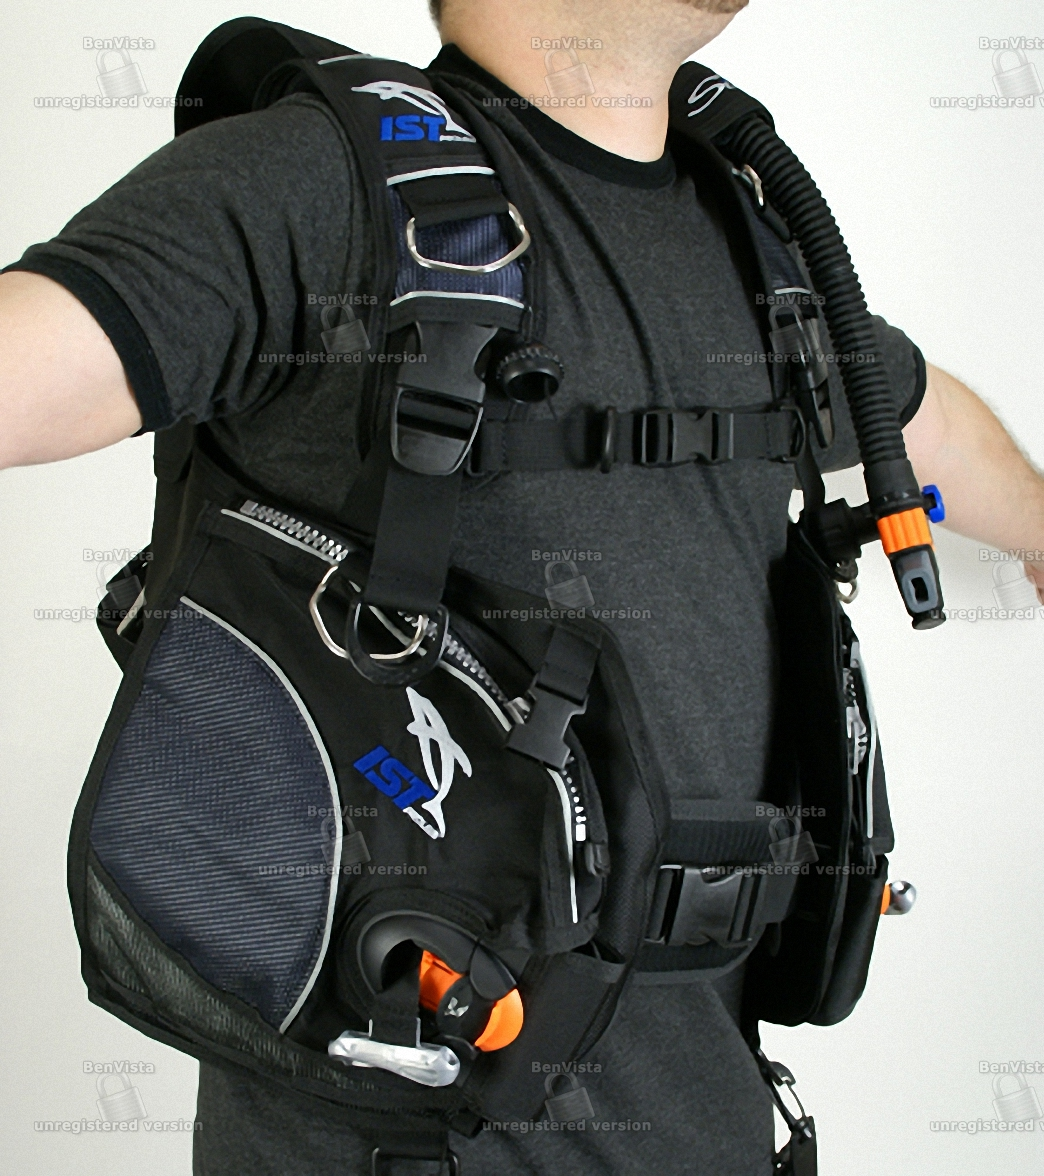 bb9df86c3ff9 IST Saturn Weight Integrated Jacket Style BC at SwimOutlet.com - Free  Shipping